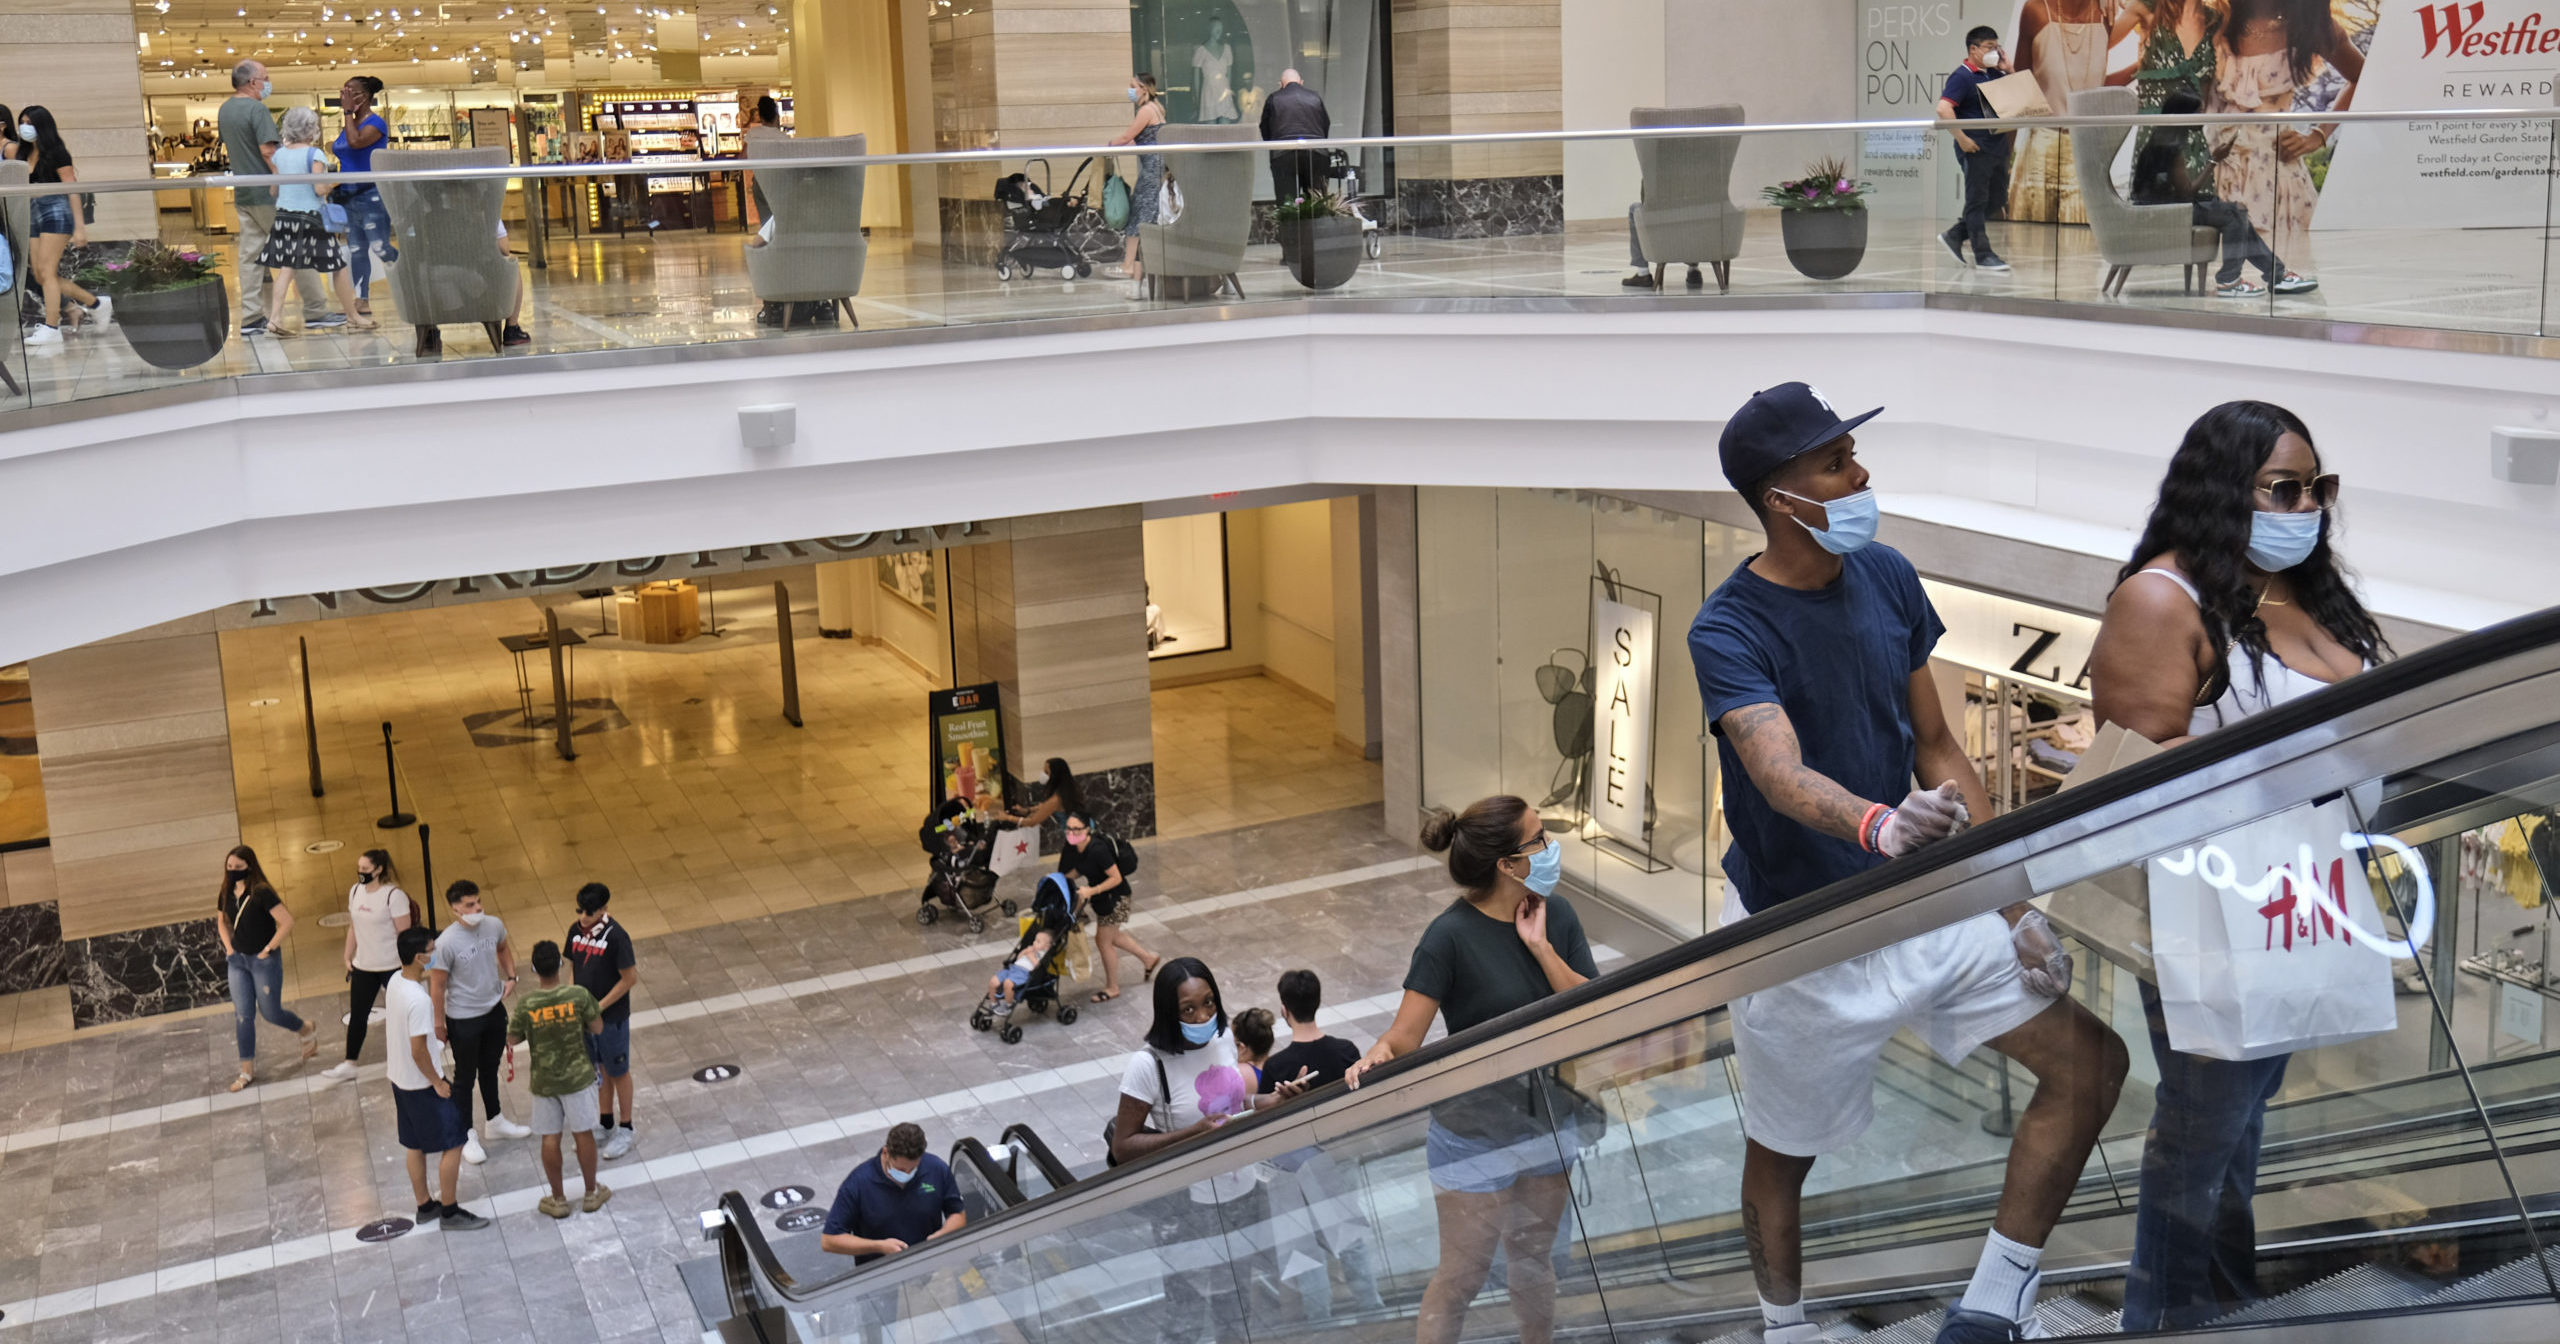 In this June 29, 2020, file photo, shoppers move about in Garden State Plaza in Paramus, New Jersey. U.S. consumer confidence rose to 98.1 in June, reflecting the partial re-opening of the country.